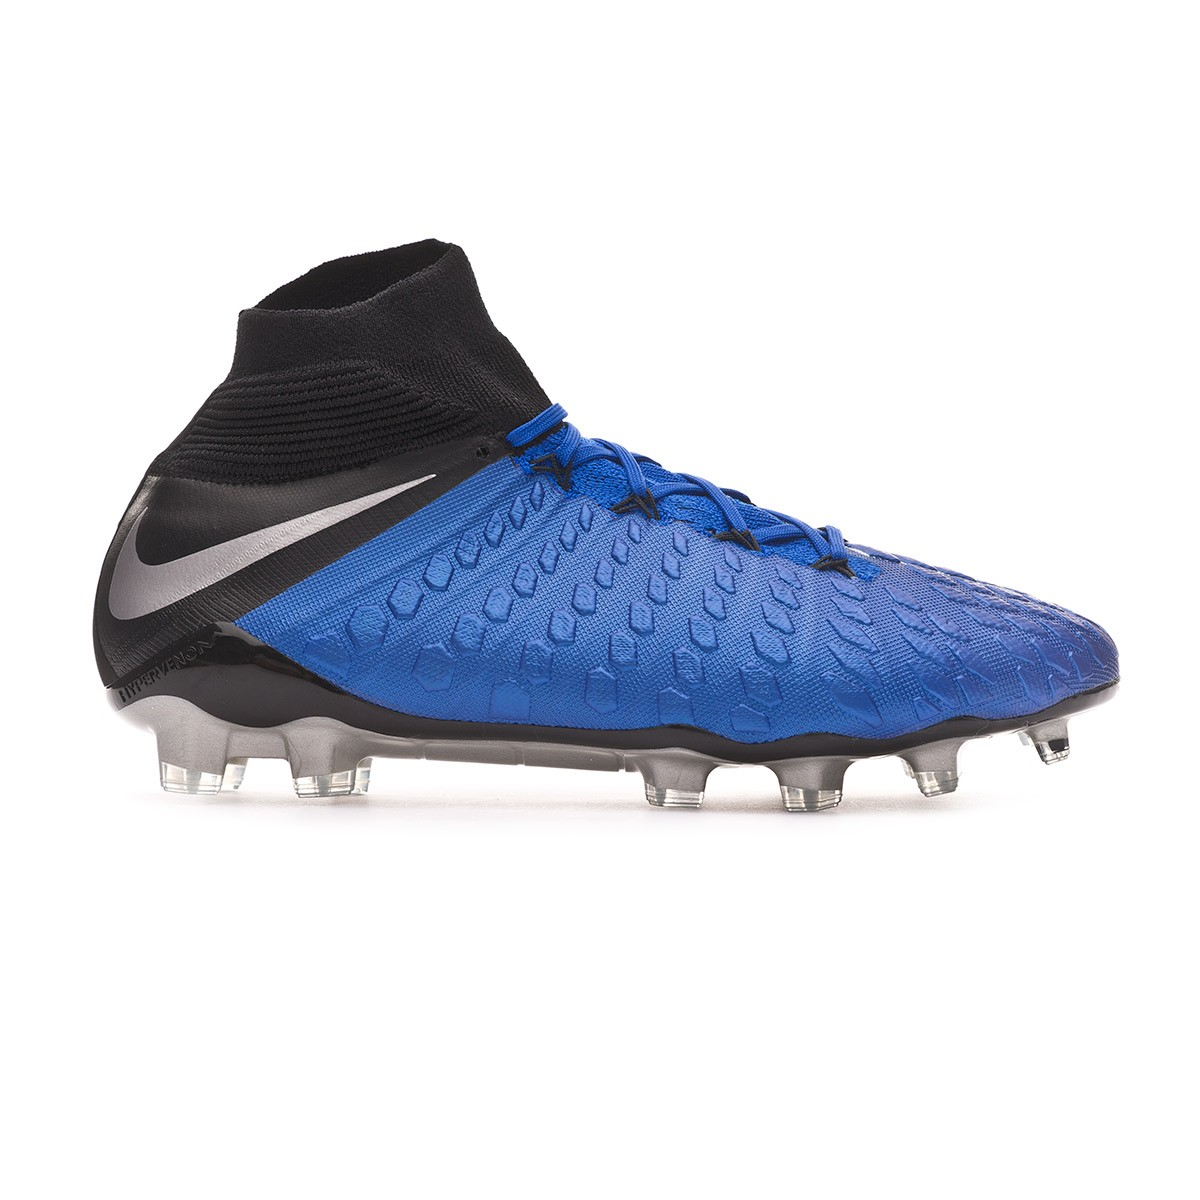 hot sale online 1ca4f 964ee Bota Hypervenom Phantom III Elite DF FG Racer blue-Metallic  silver-Black-Volt